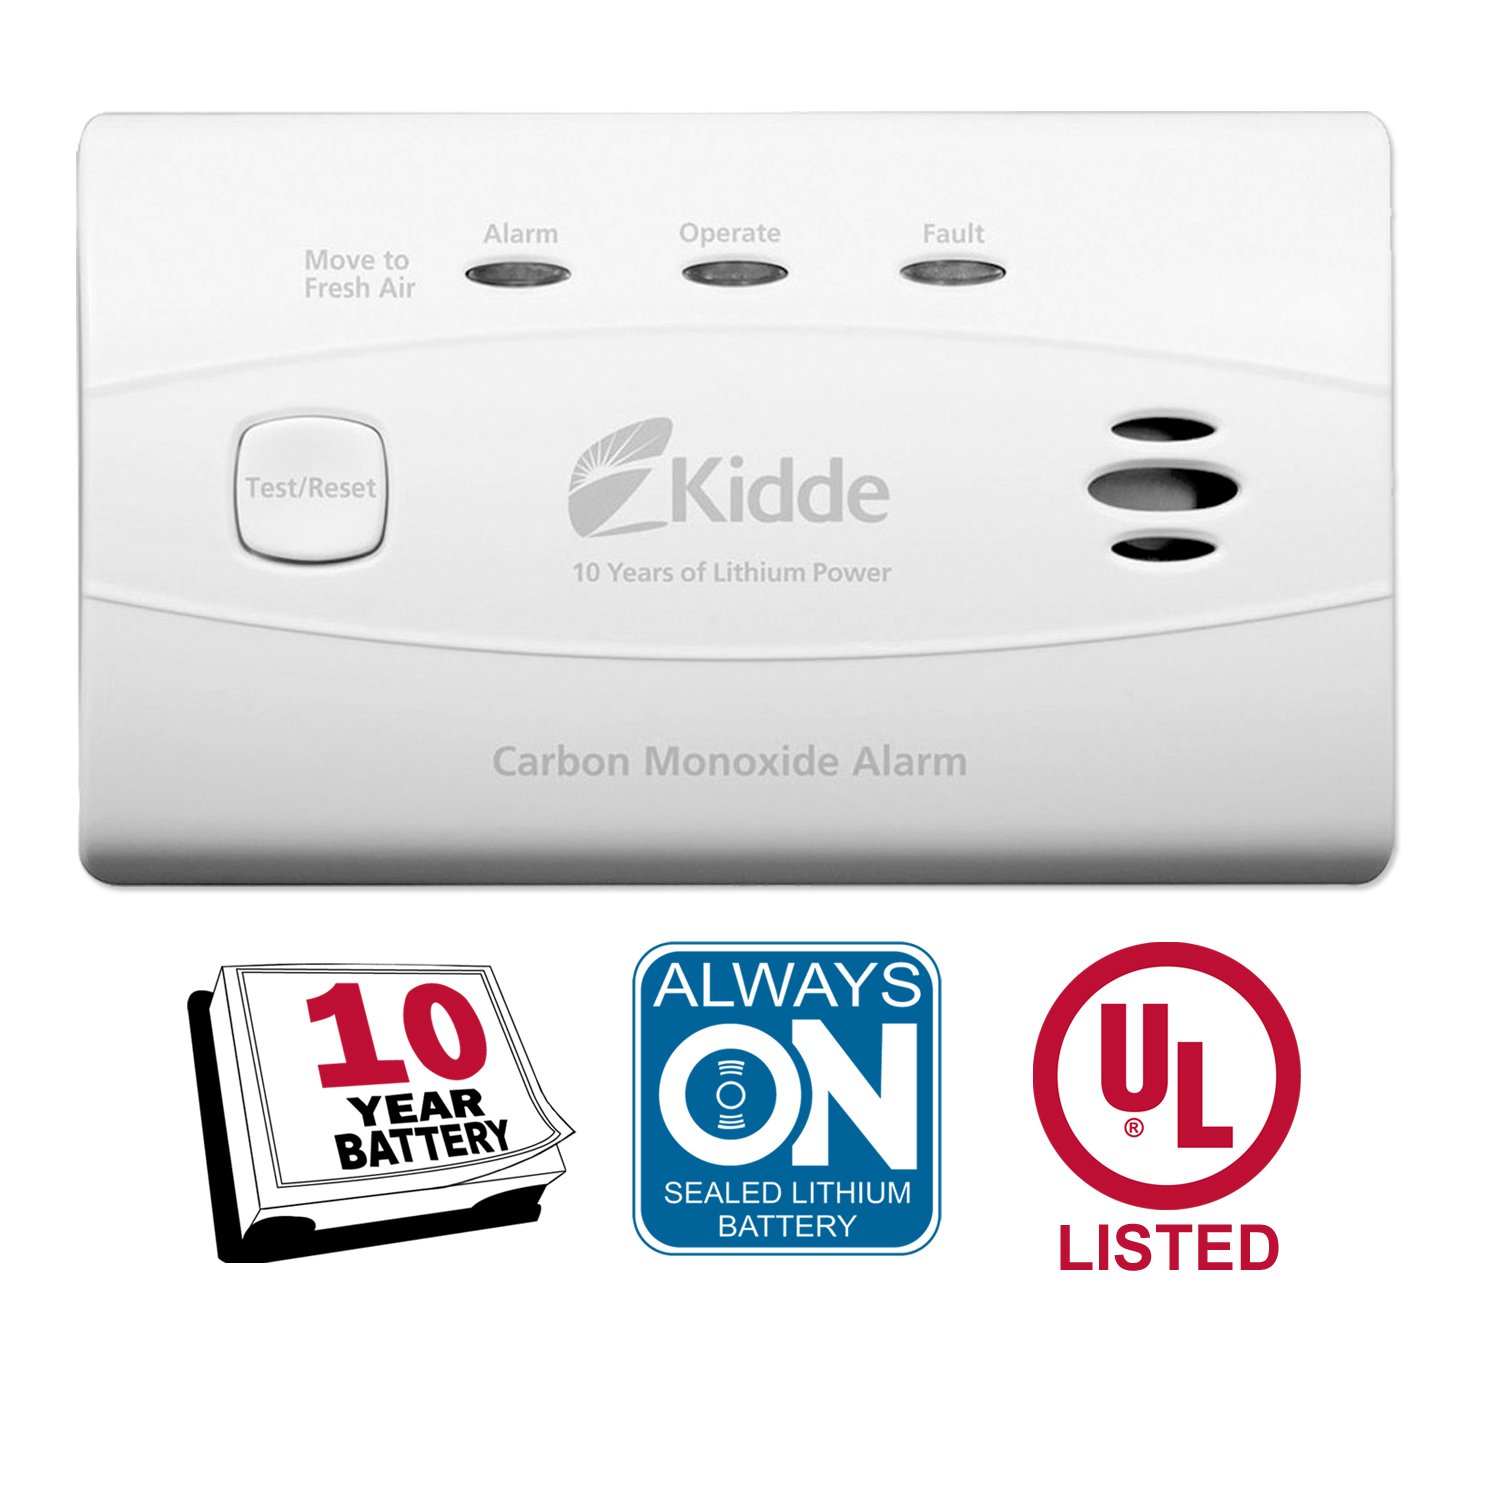 Kidde Worry-Free Carbon Monoxide Detector Alarm with 10 Year Sealed Battery | Model C3010 by Kidde